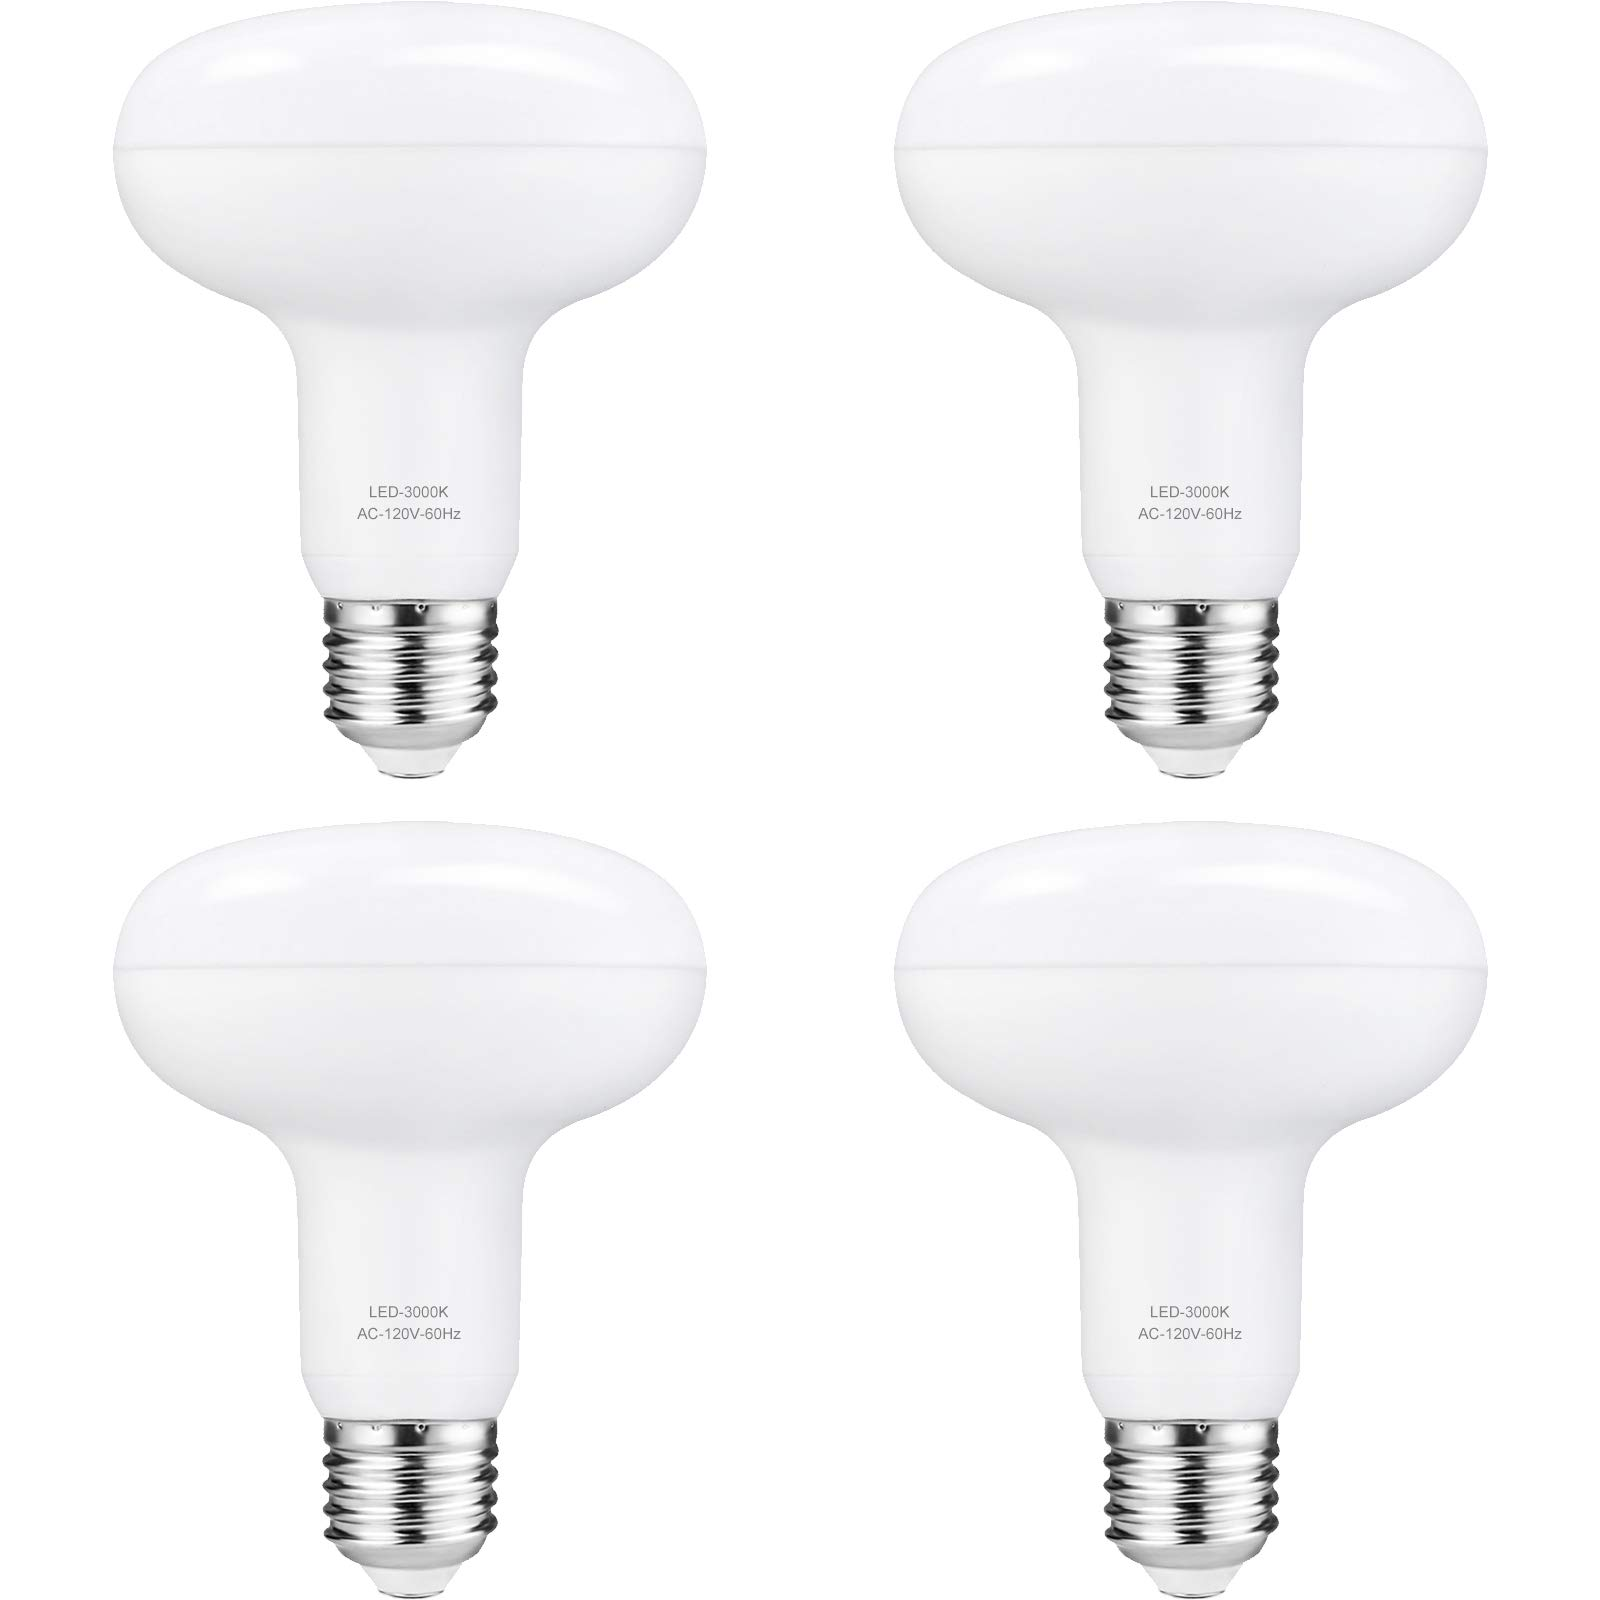 LED Can Light Bulbs BR30 - 12W Dimmable E26 Base Recessed Lightbulbs Replace 100W, Warm White 3000K 1200 Lumens Indoor Reflector Flood Lighting, Pack of 4